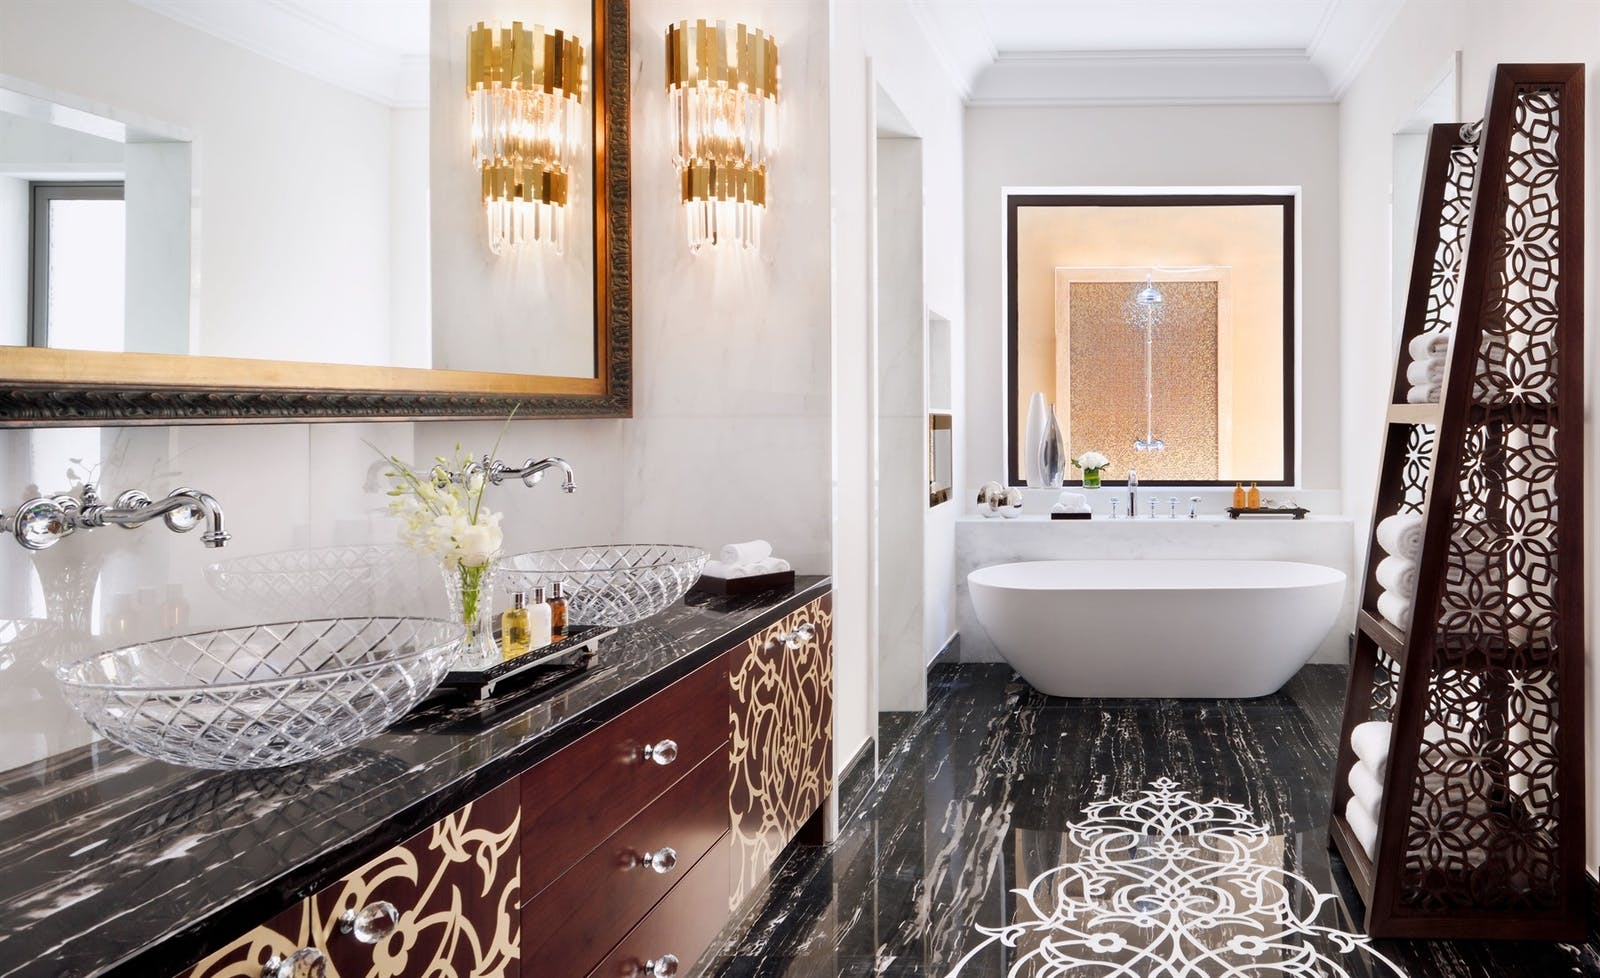 Bathroom at One&Only Royal Mirage, Dubai